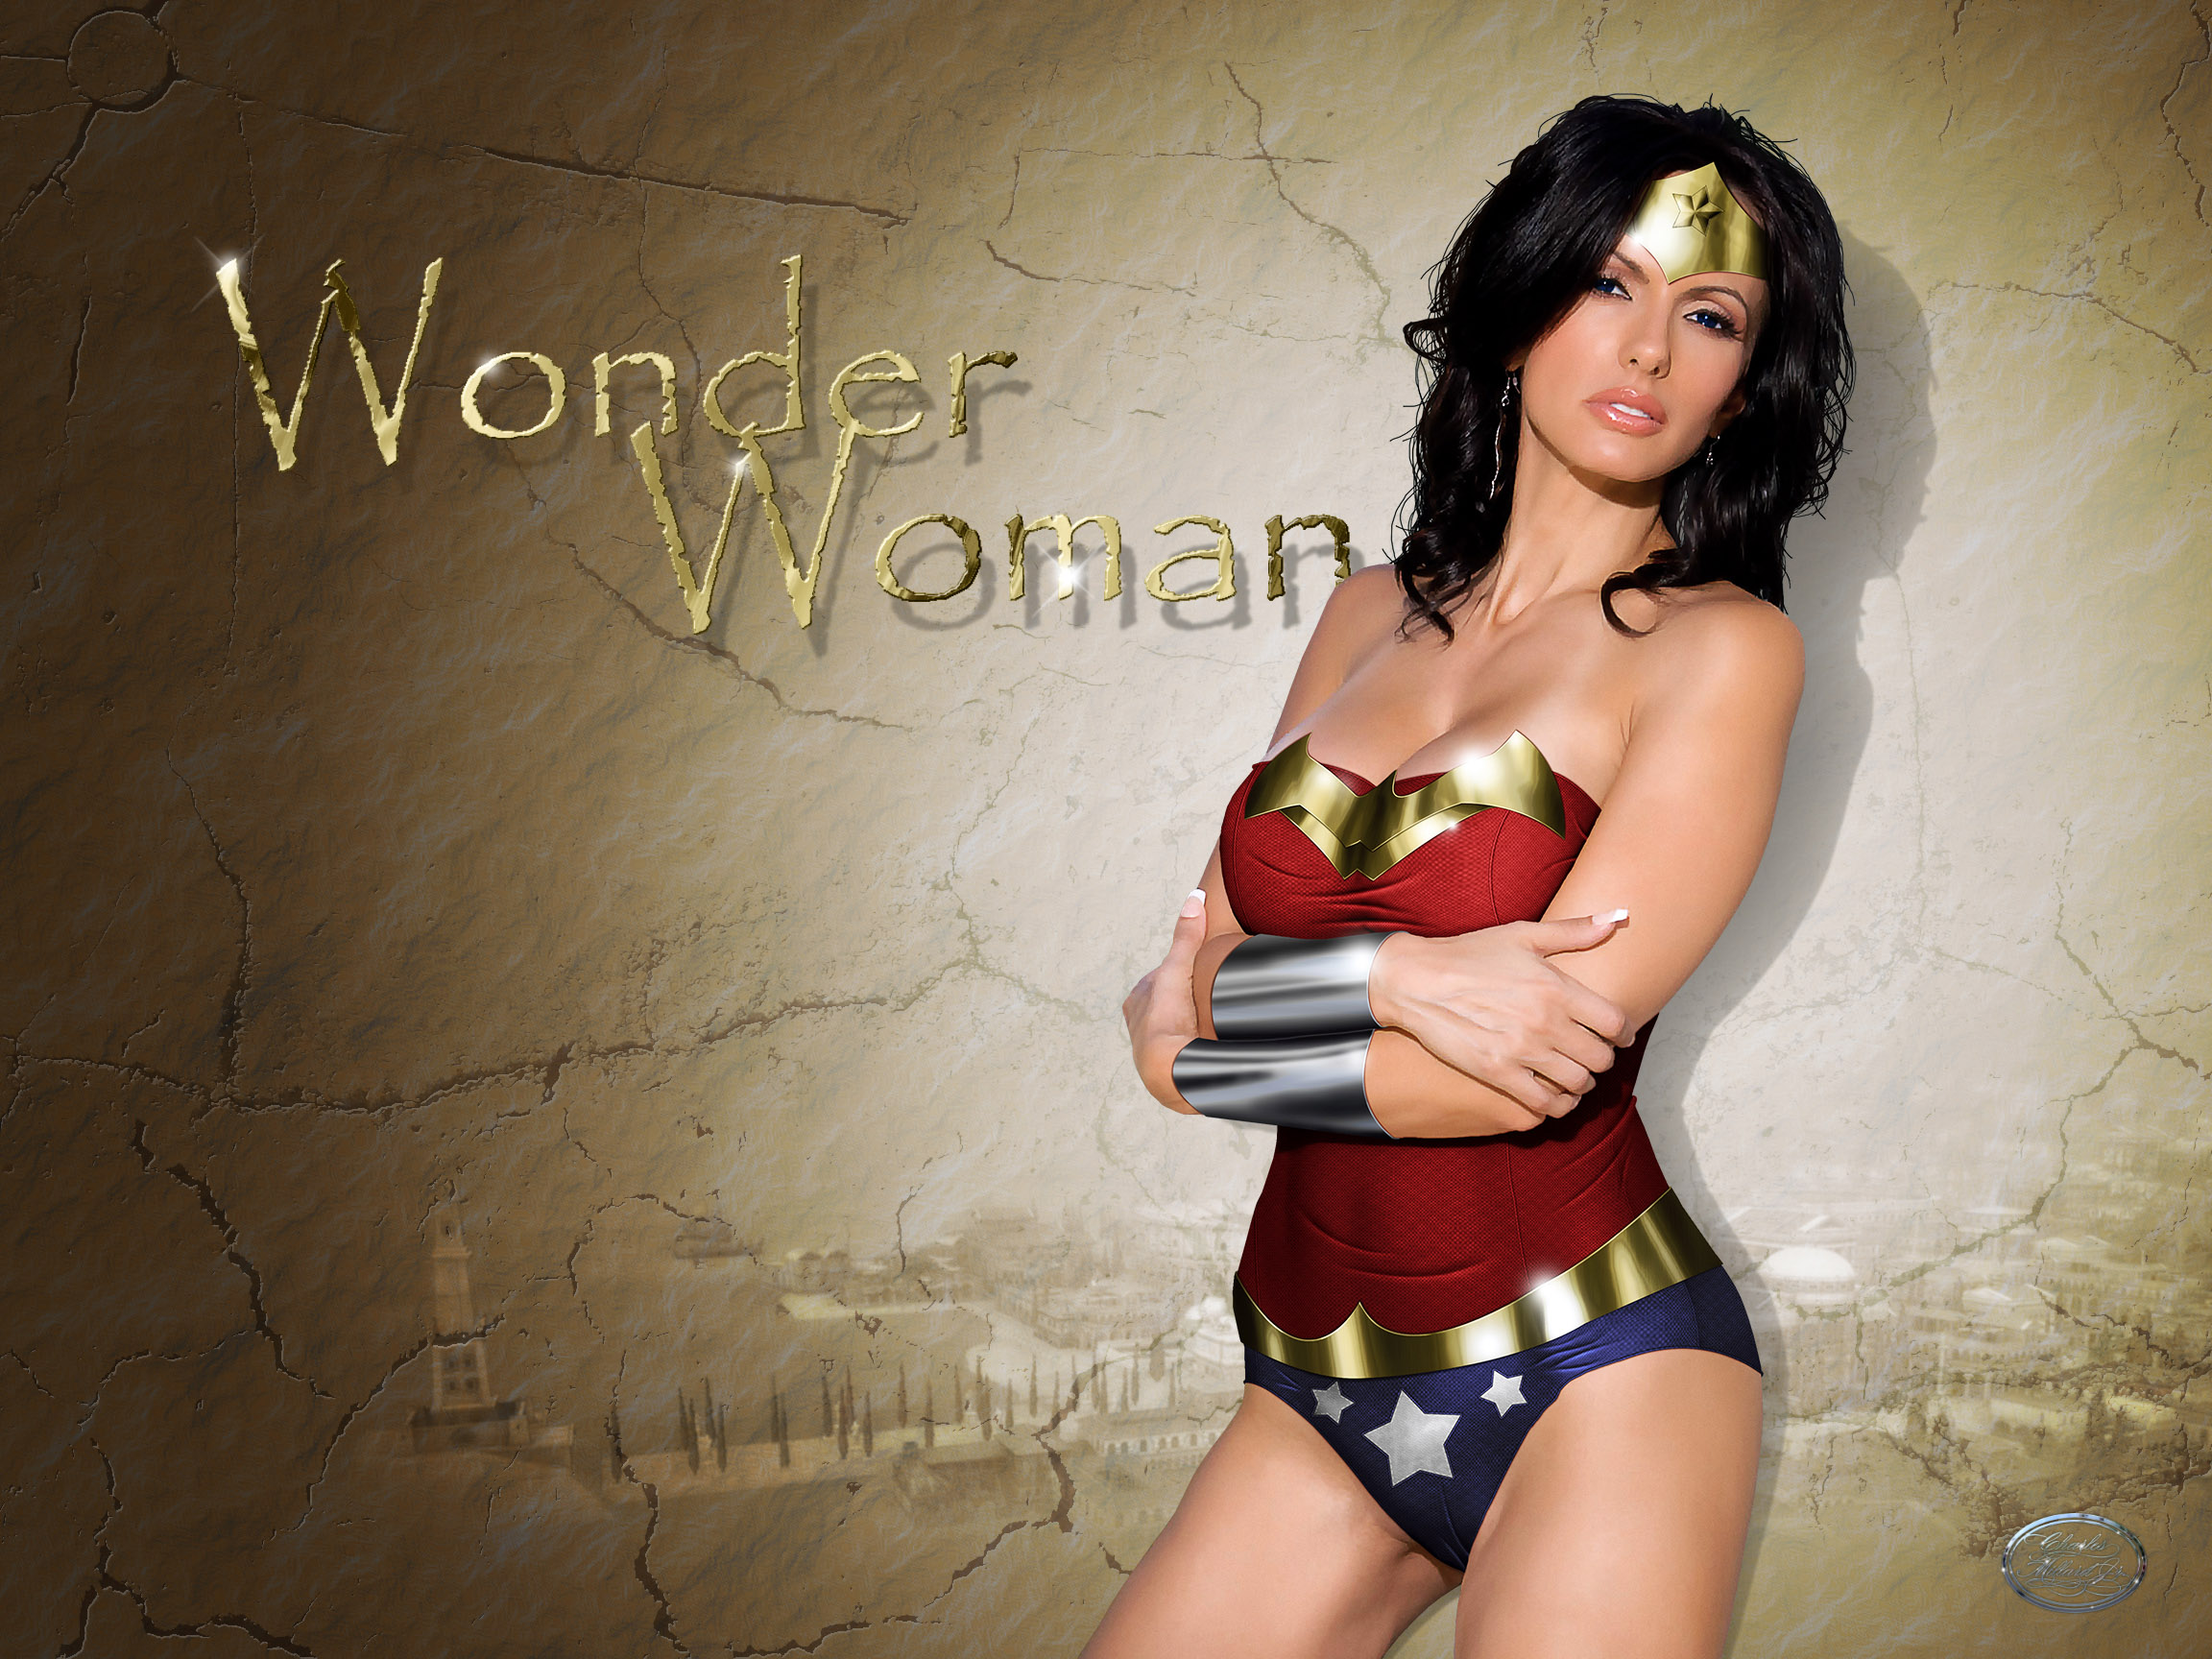 Another Wonder Woman Image for the galleries